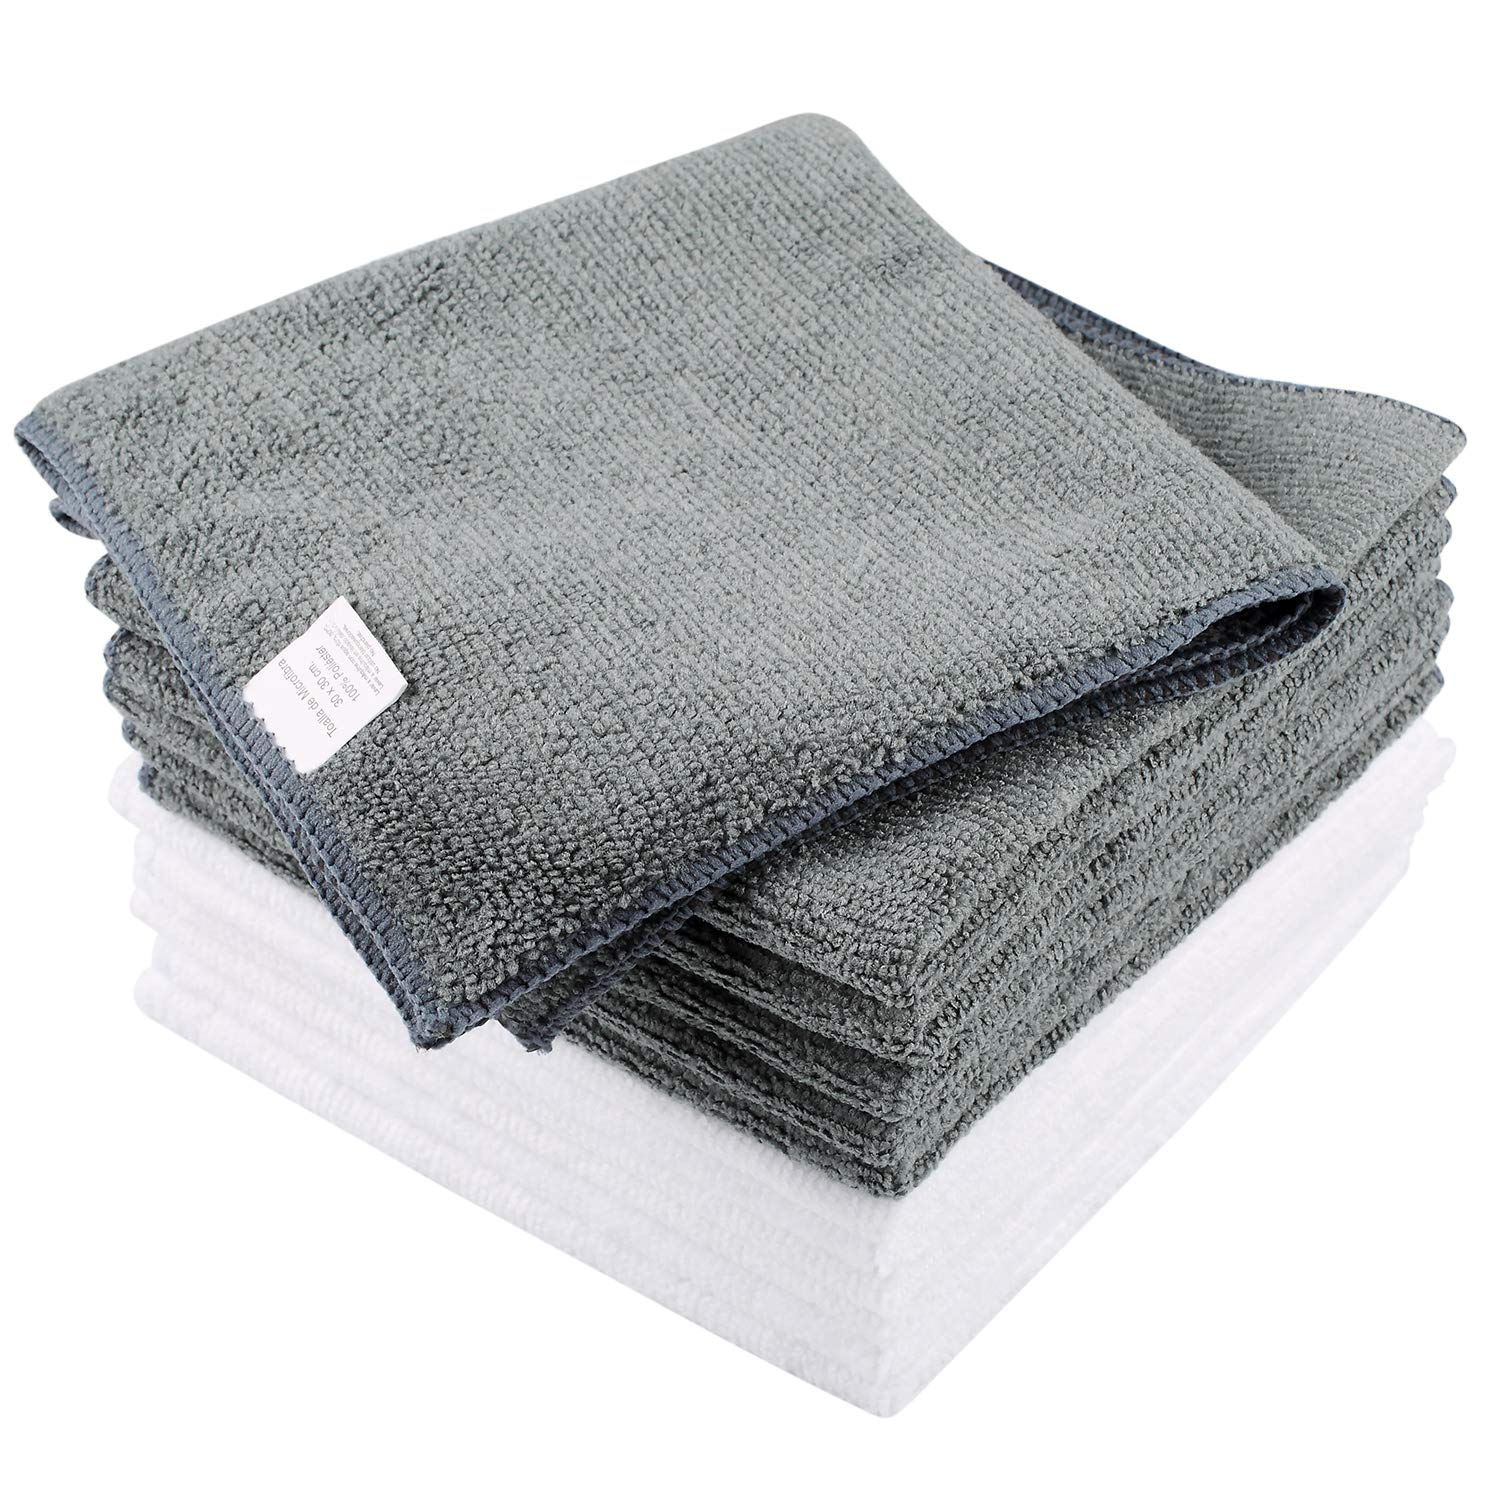 Amazon.com: Solars Microfiber Kitchen Dish Cloths Cleaning Cloths Super Soft, Absorbent and Antibacterial Dust Cloths, 12 x 12 Inch Pack of 12 (Gray+White): ...